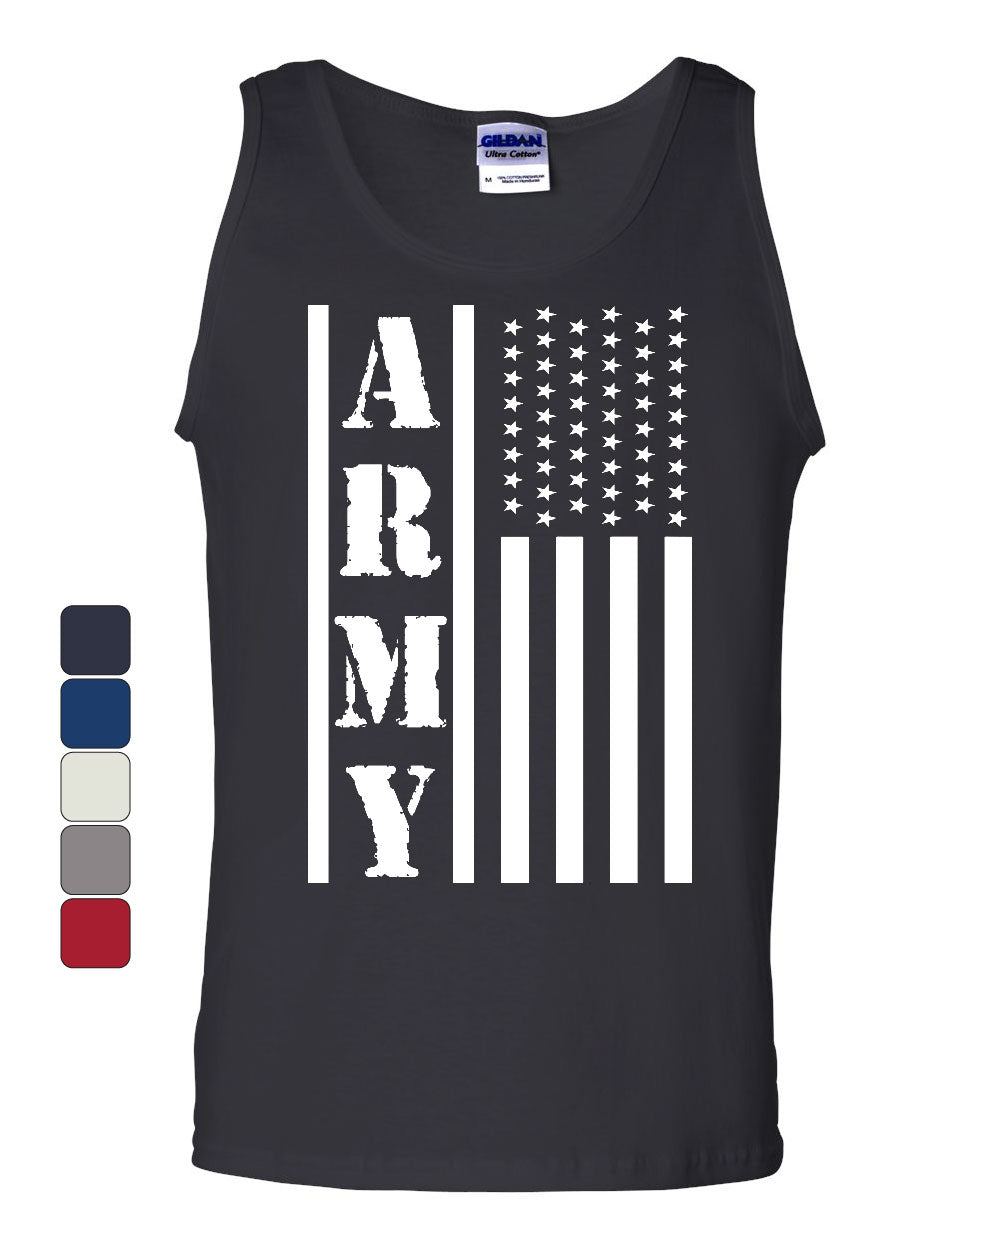 Army Flag Military Youth T-Shirt Patriot Veteran Stars /& Stripes Honor Kids Tee